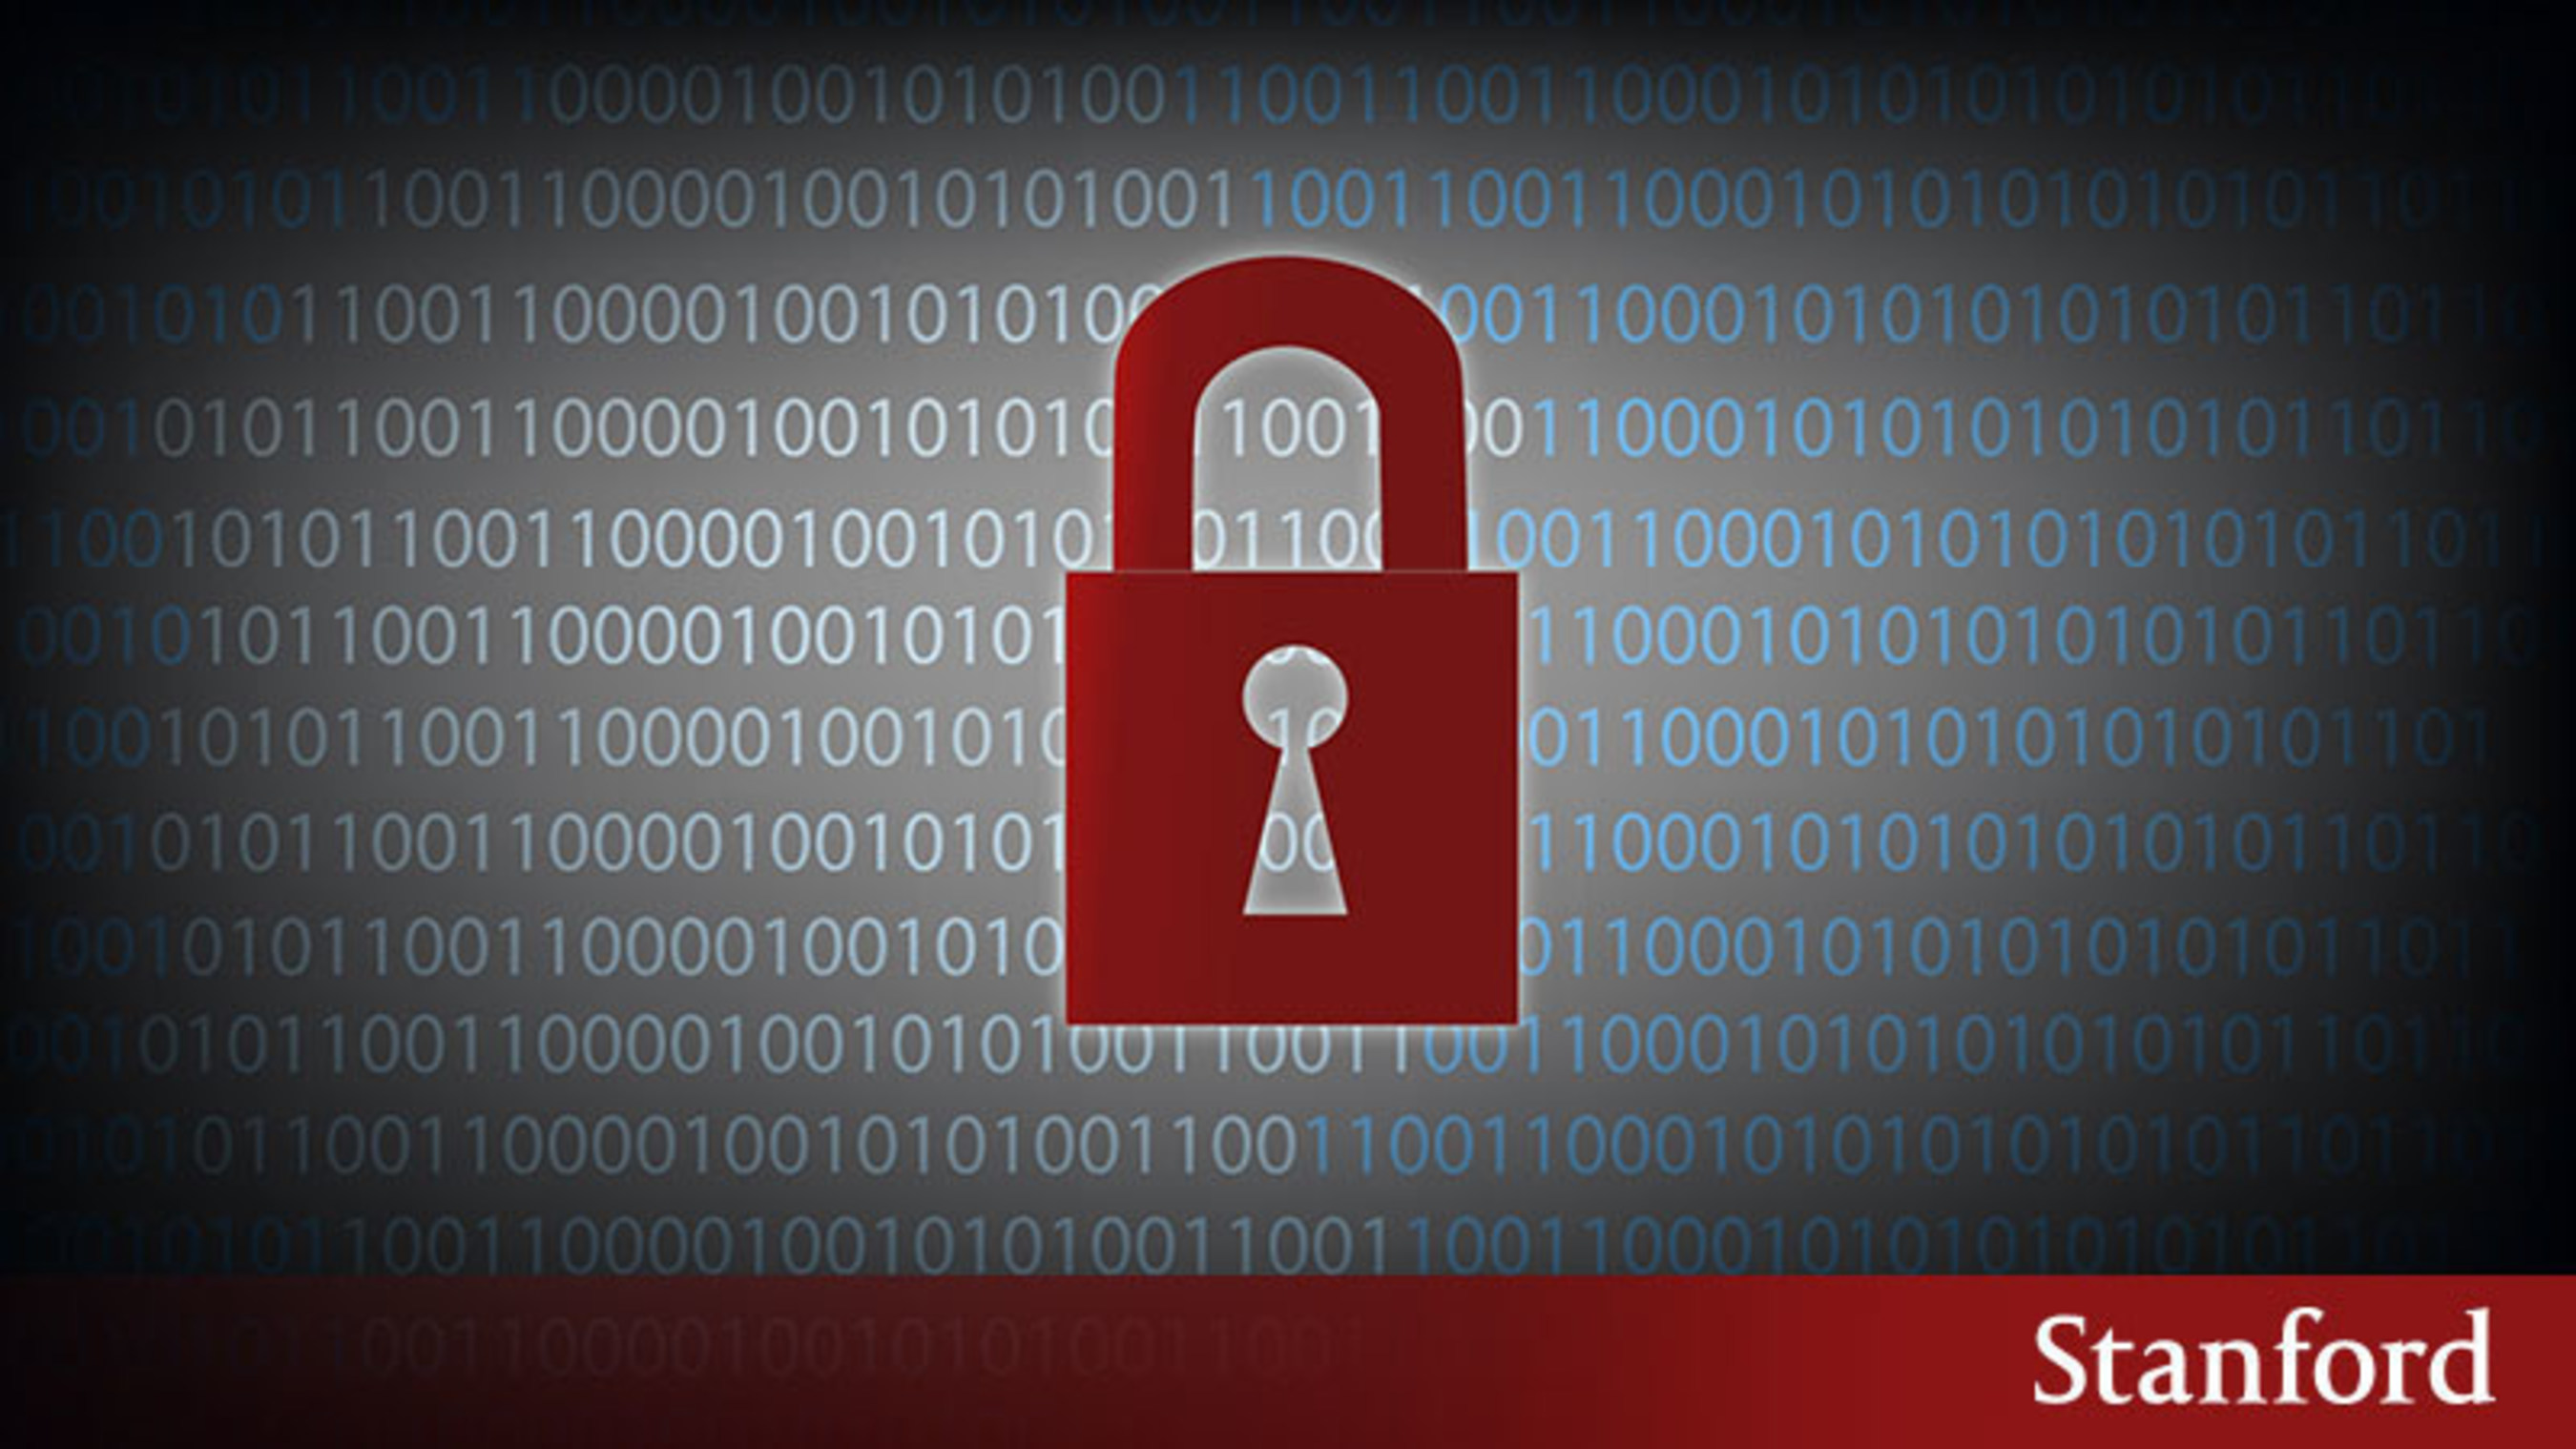 Image from Stanford Advanced Computer Security Certificate Program website (http://computersecurity.stanford.edu/)